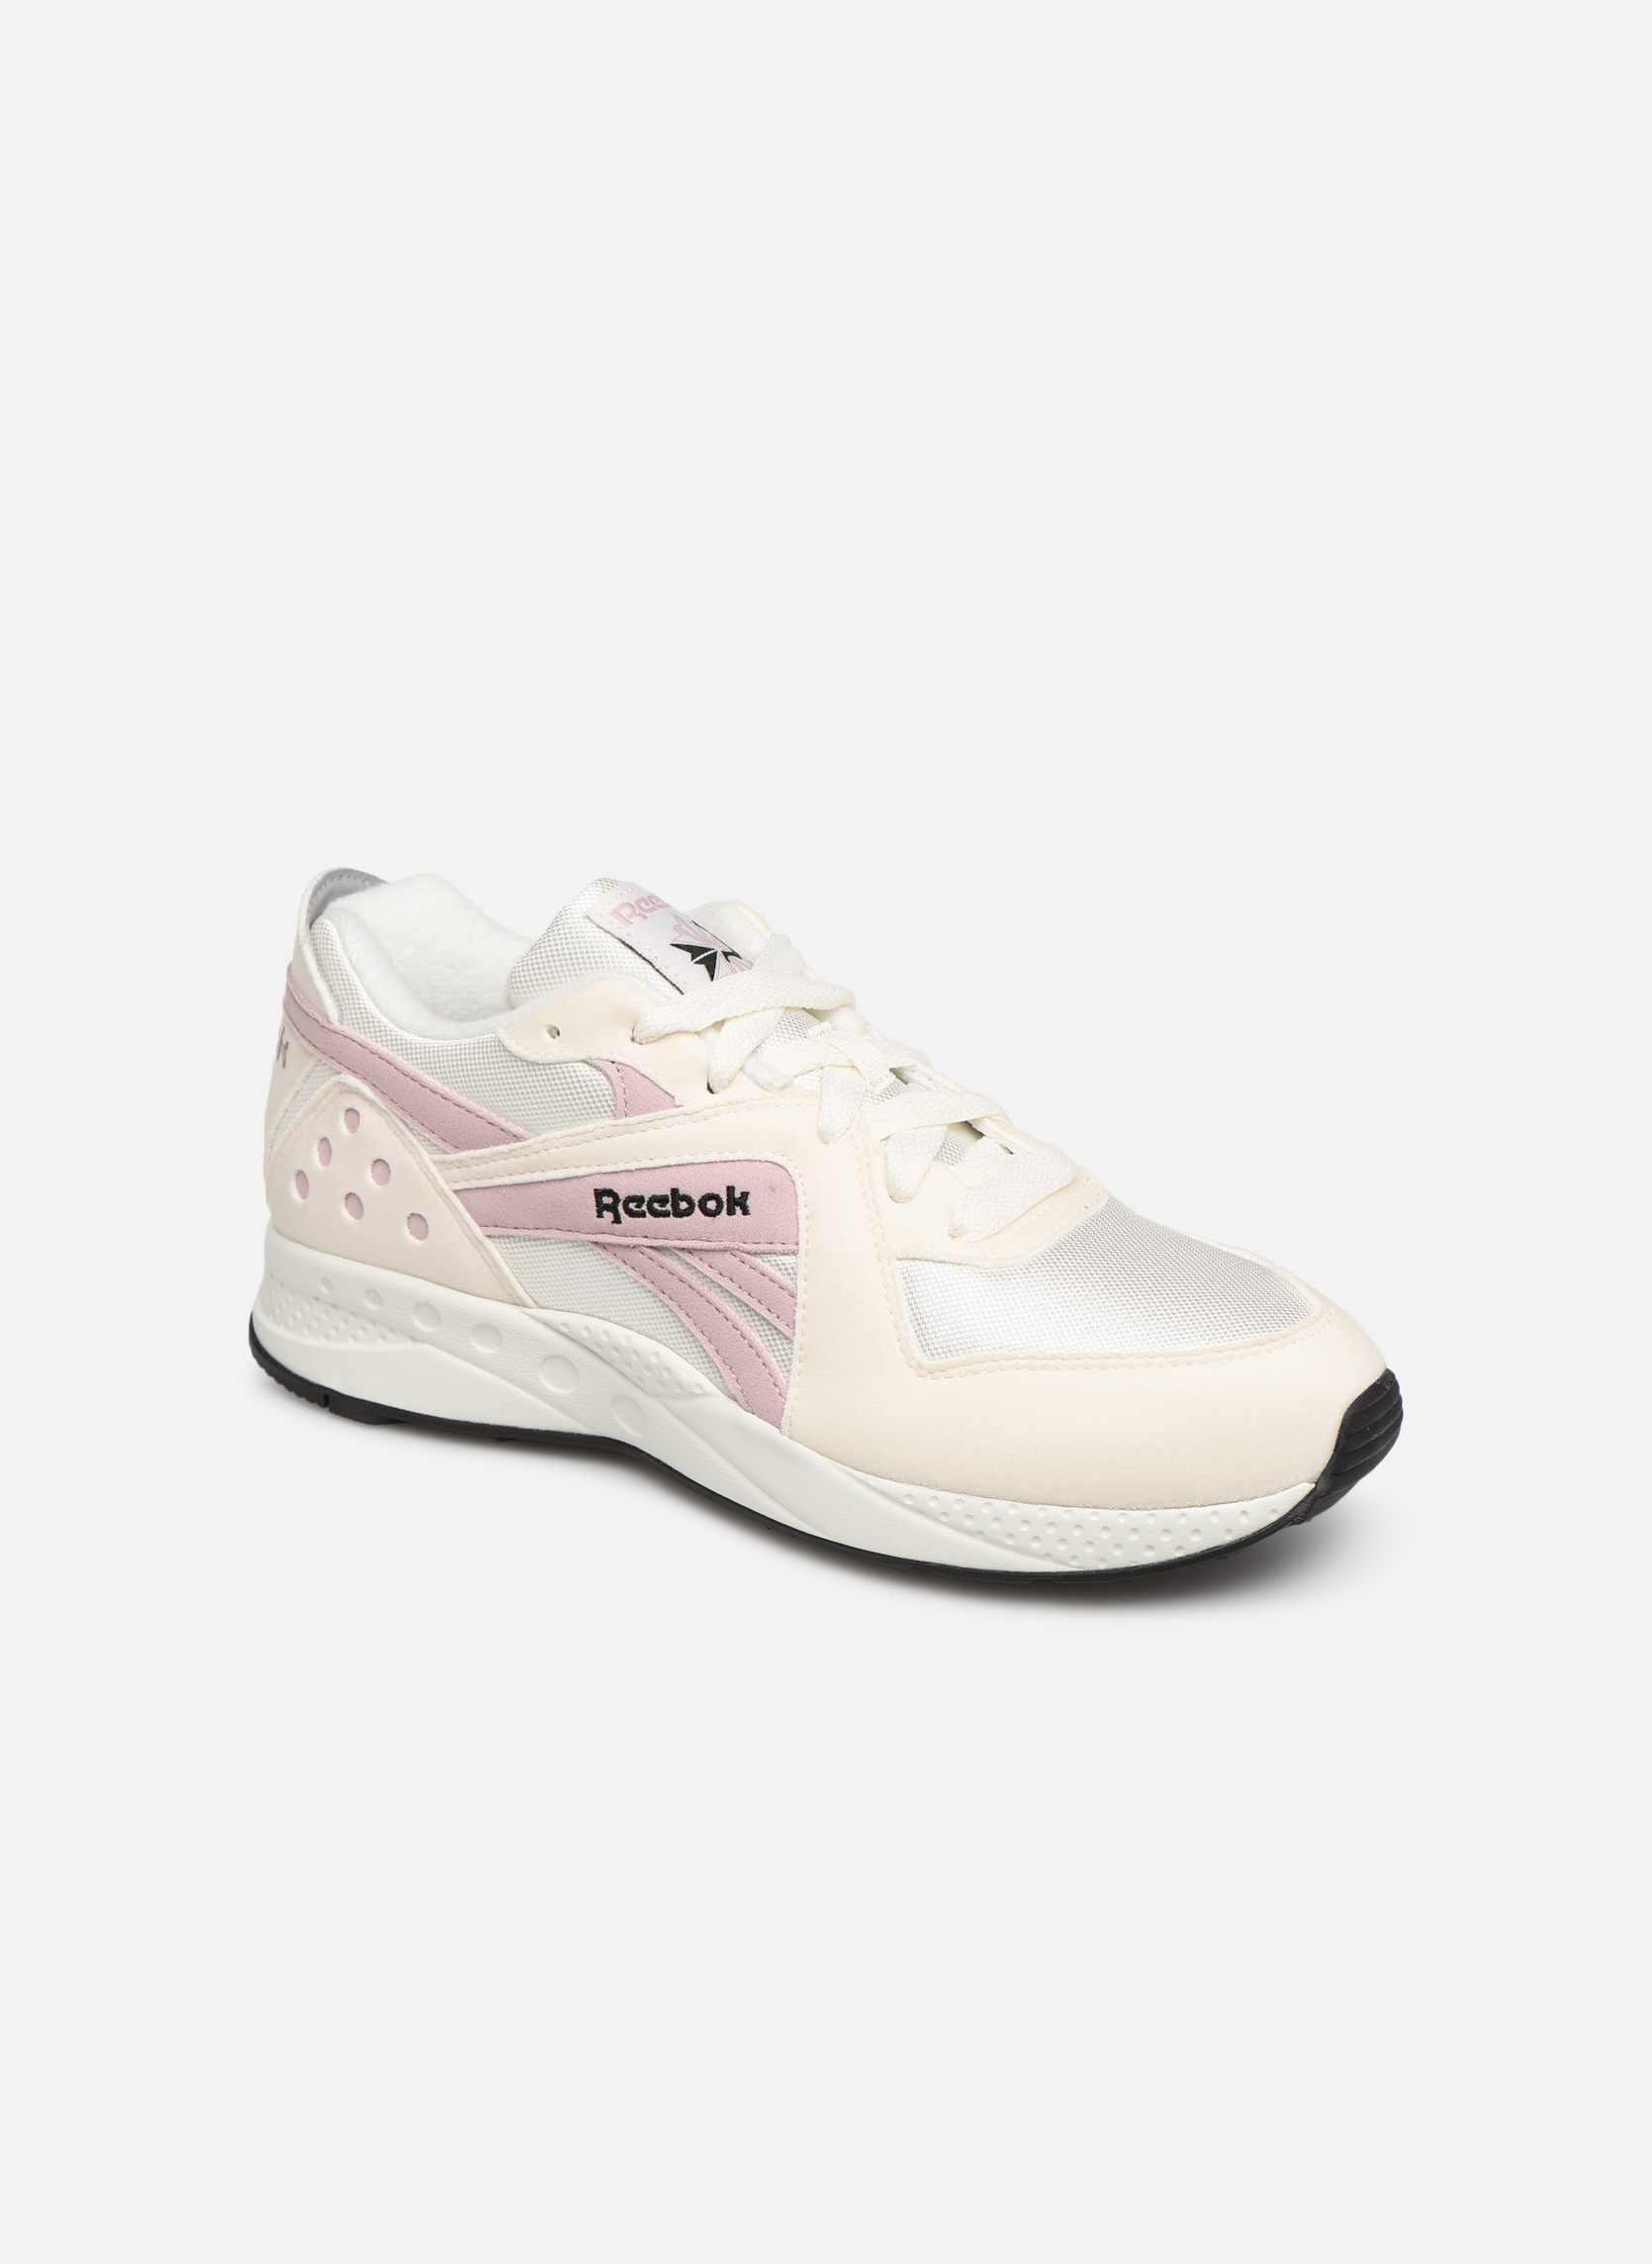 Sneakers Pyro by Reebok